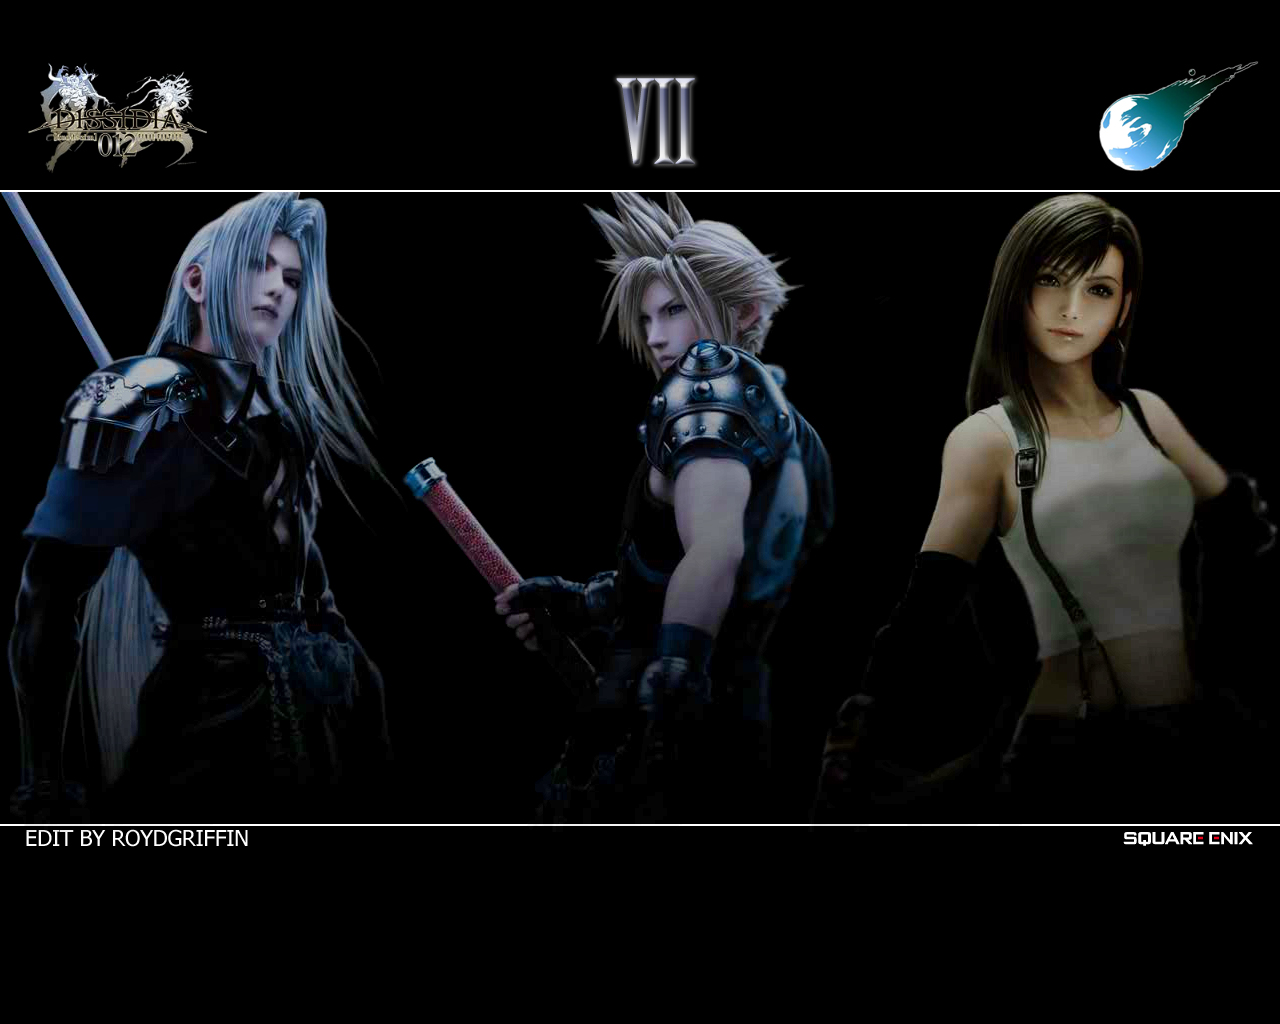 dissidia cloud and tifa relationship